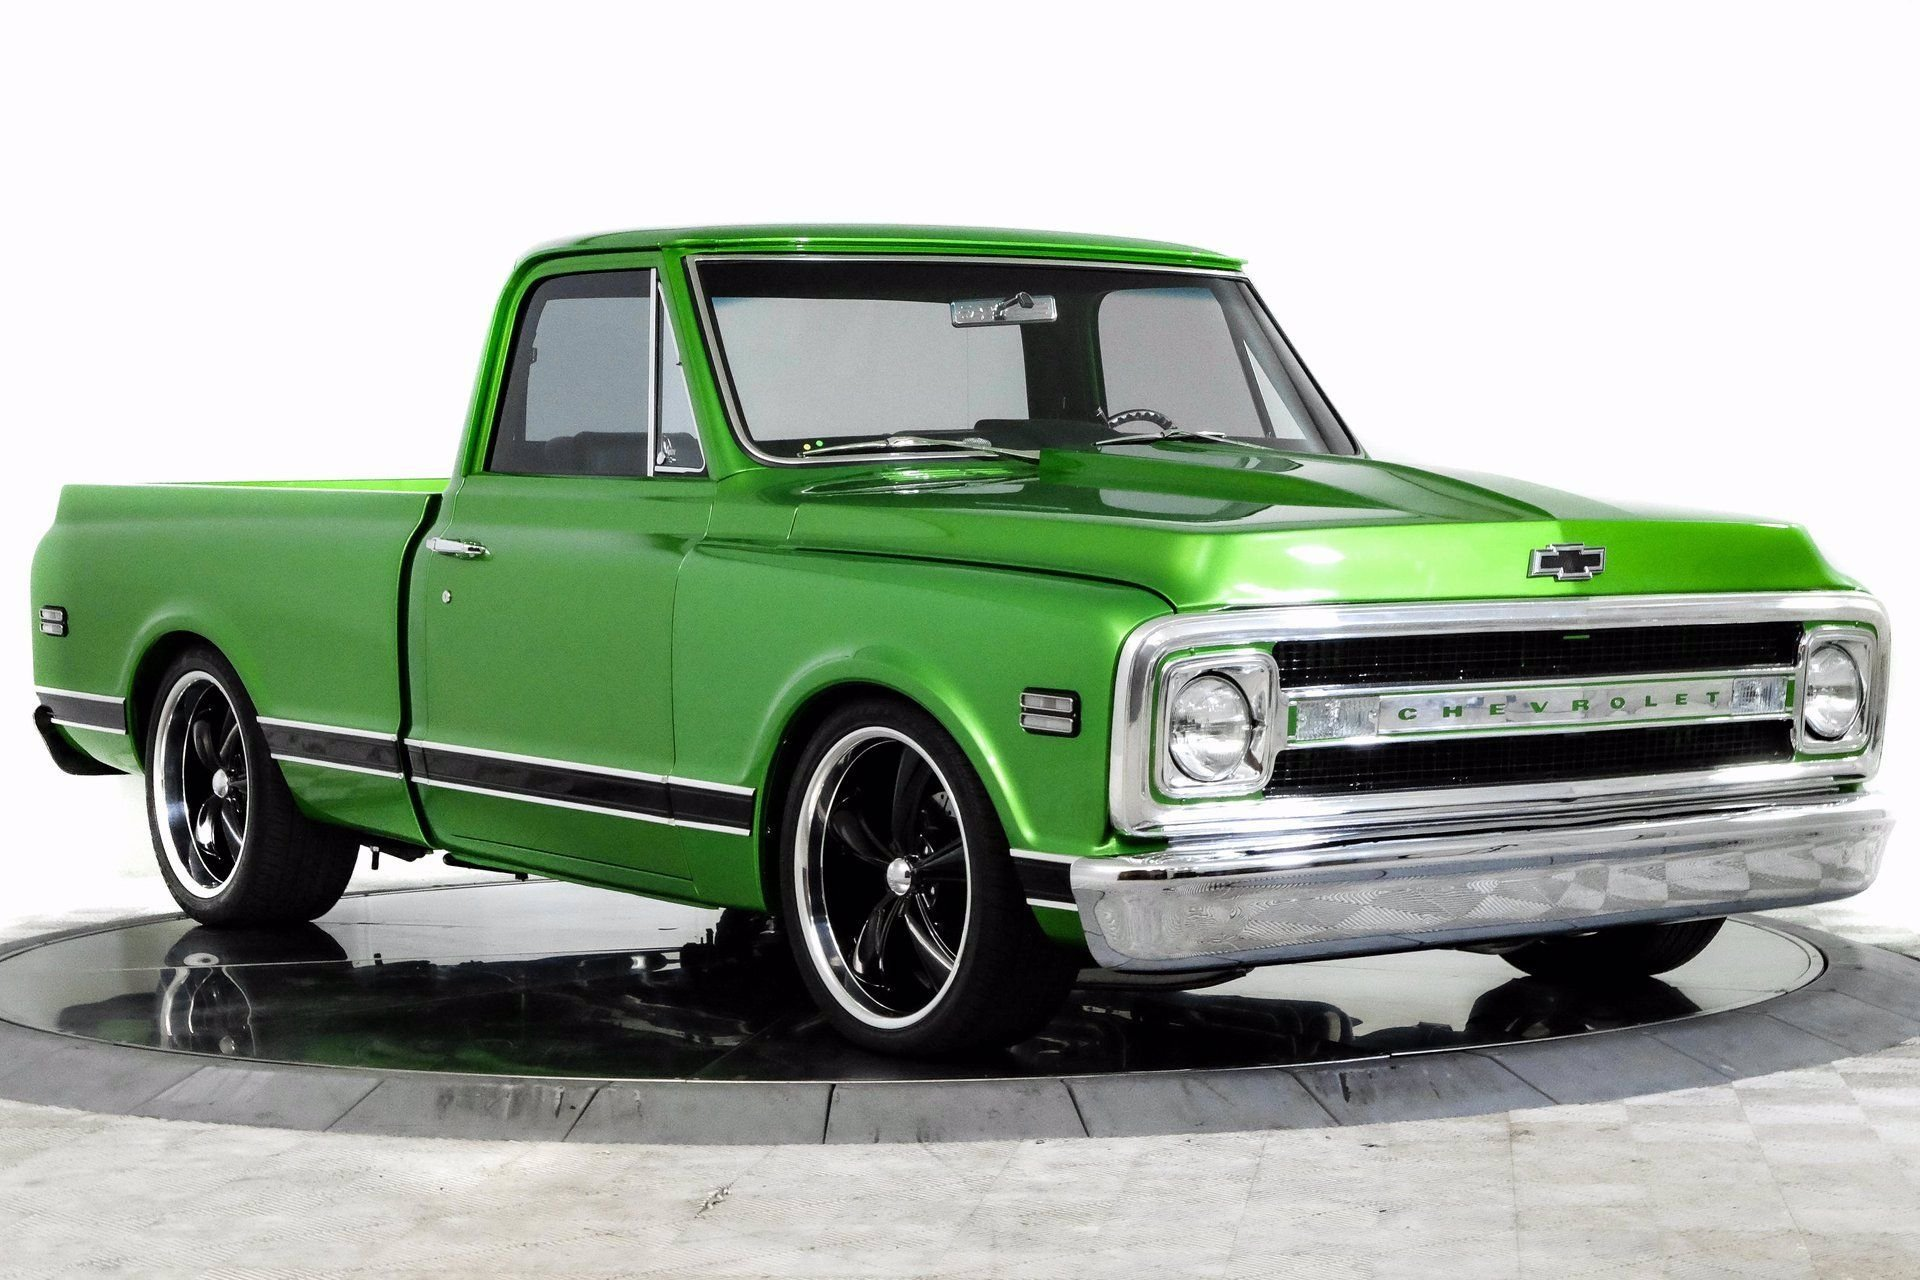 1970 chevrolet c10 restomod pickup